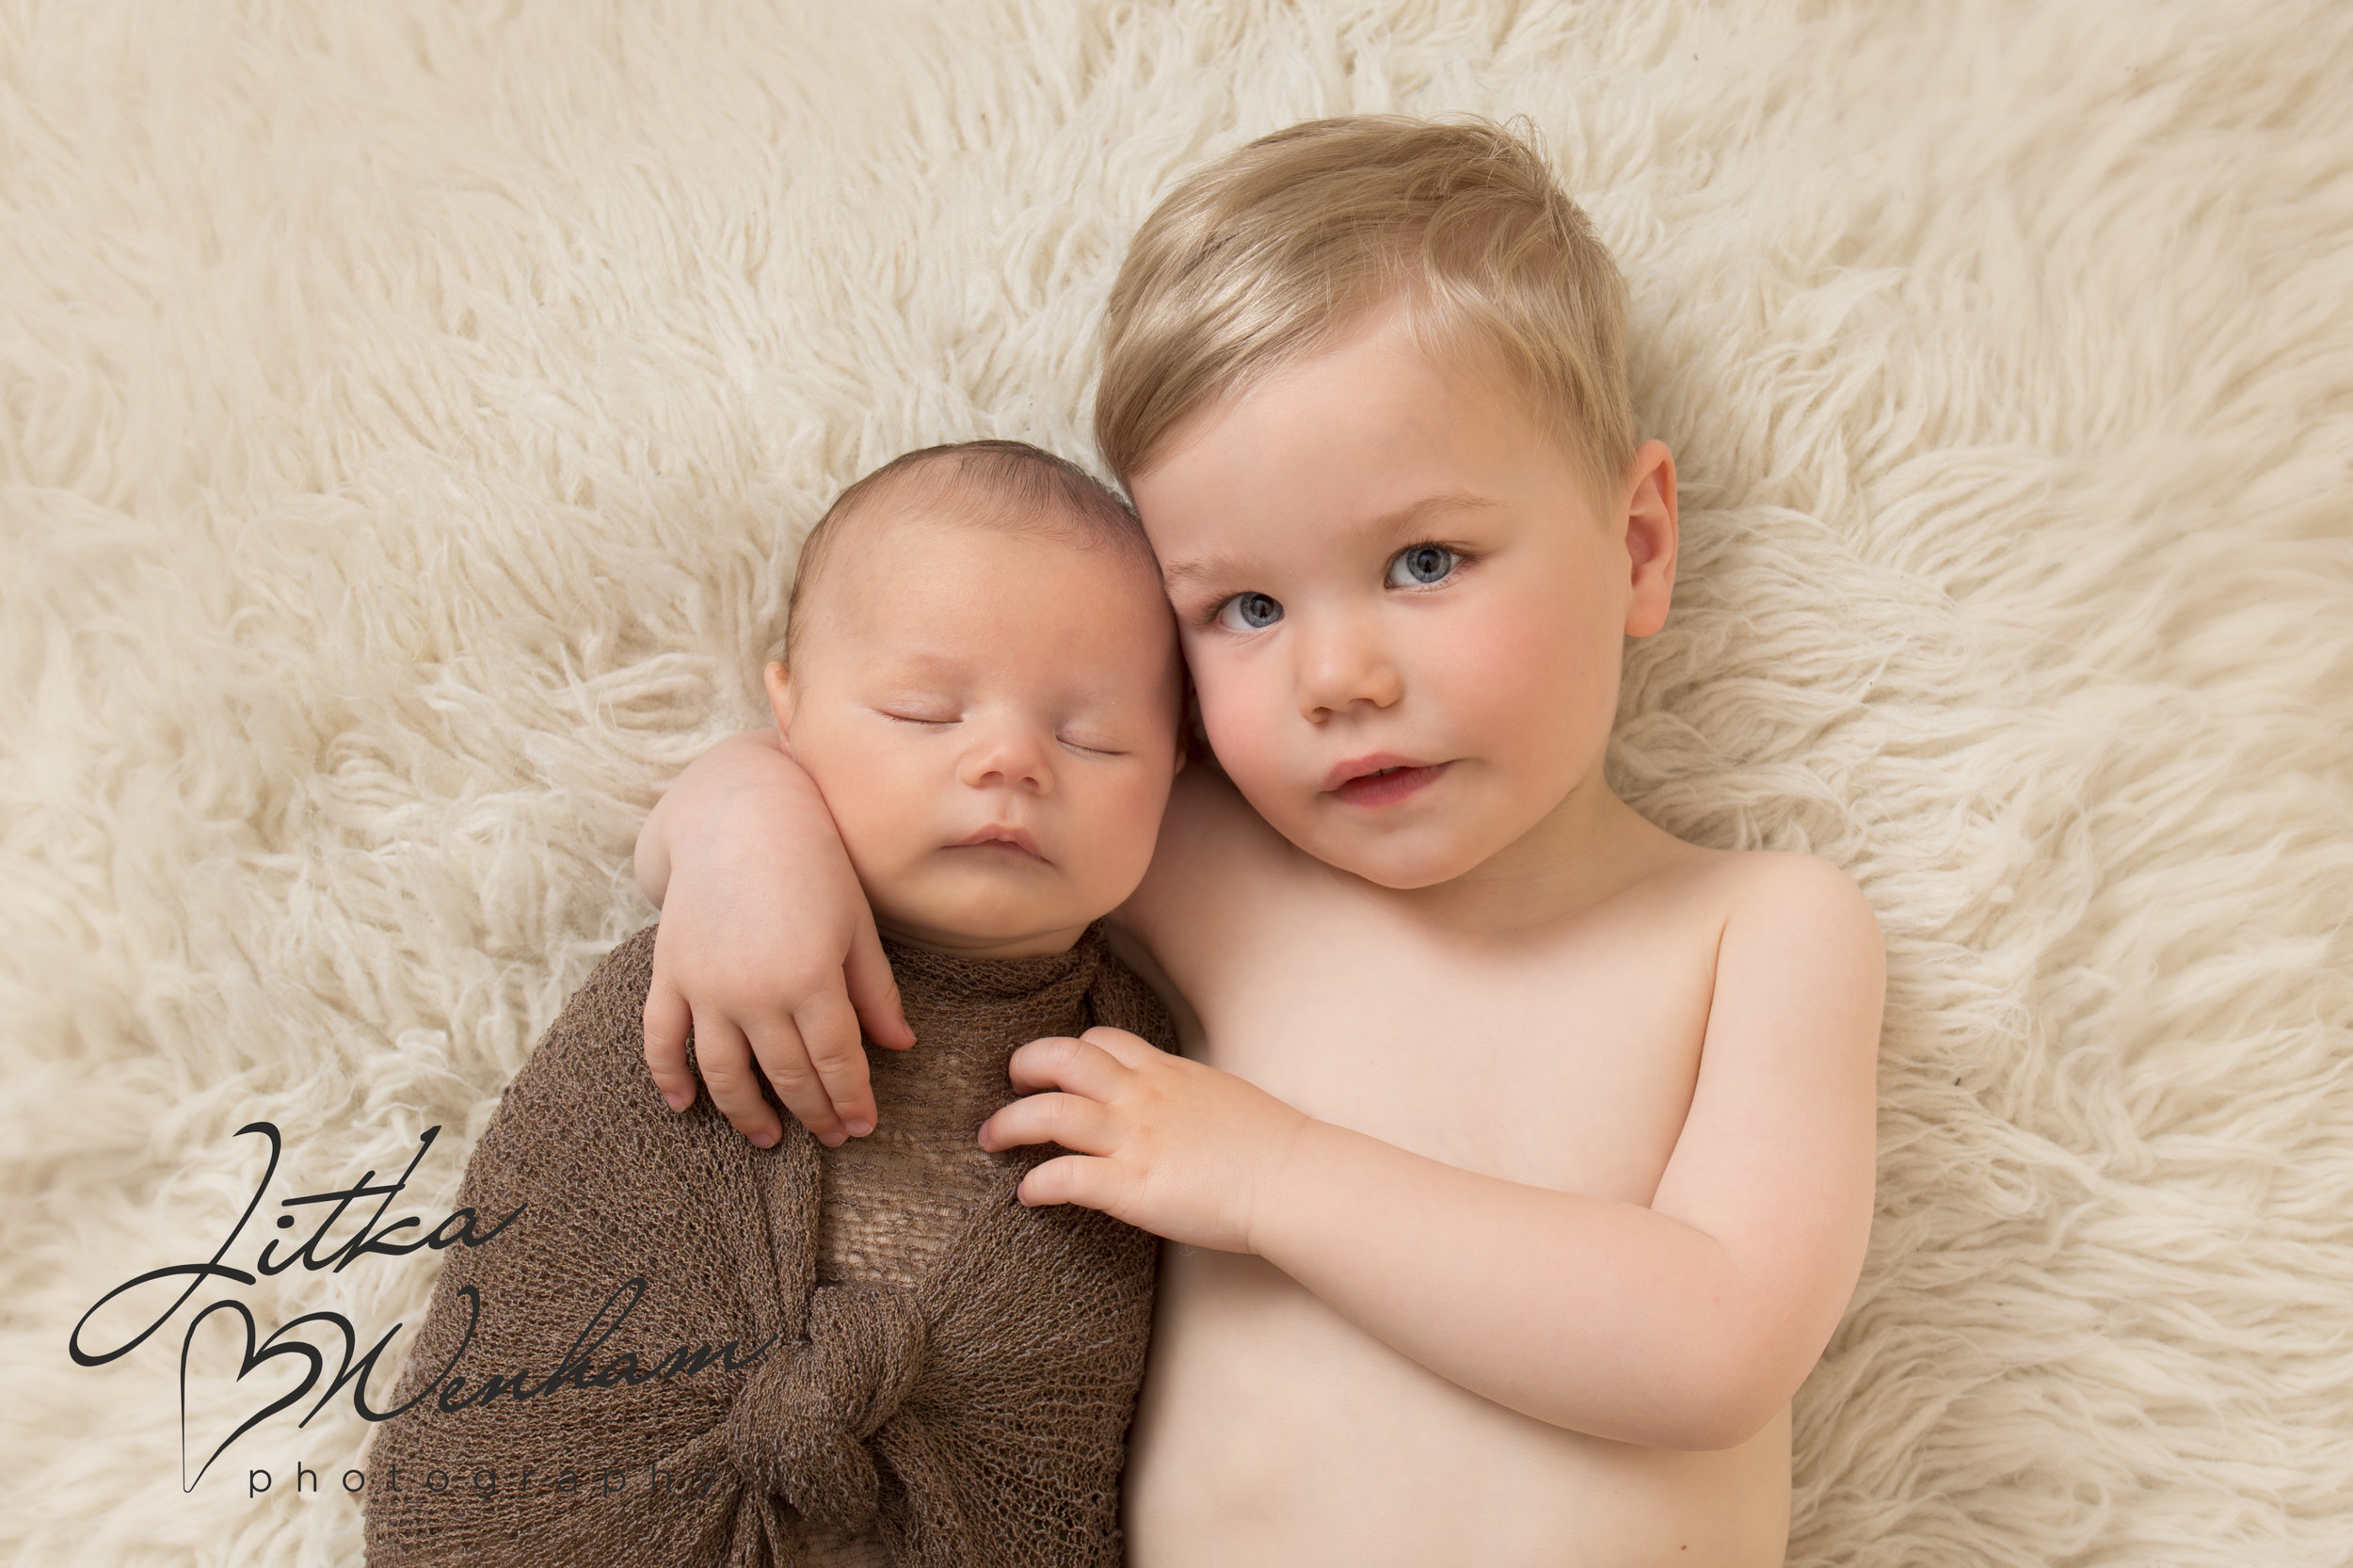 newborn-photography-children-baby-milton keynes 999-1-7.jpg